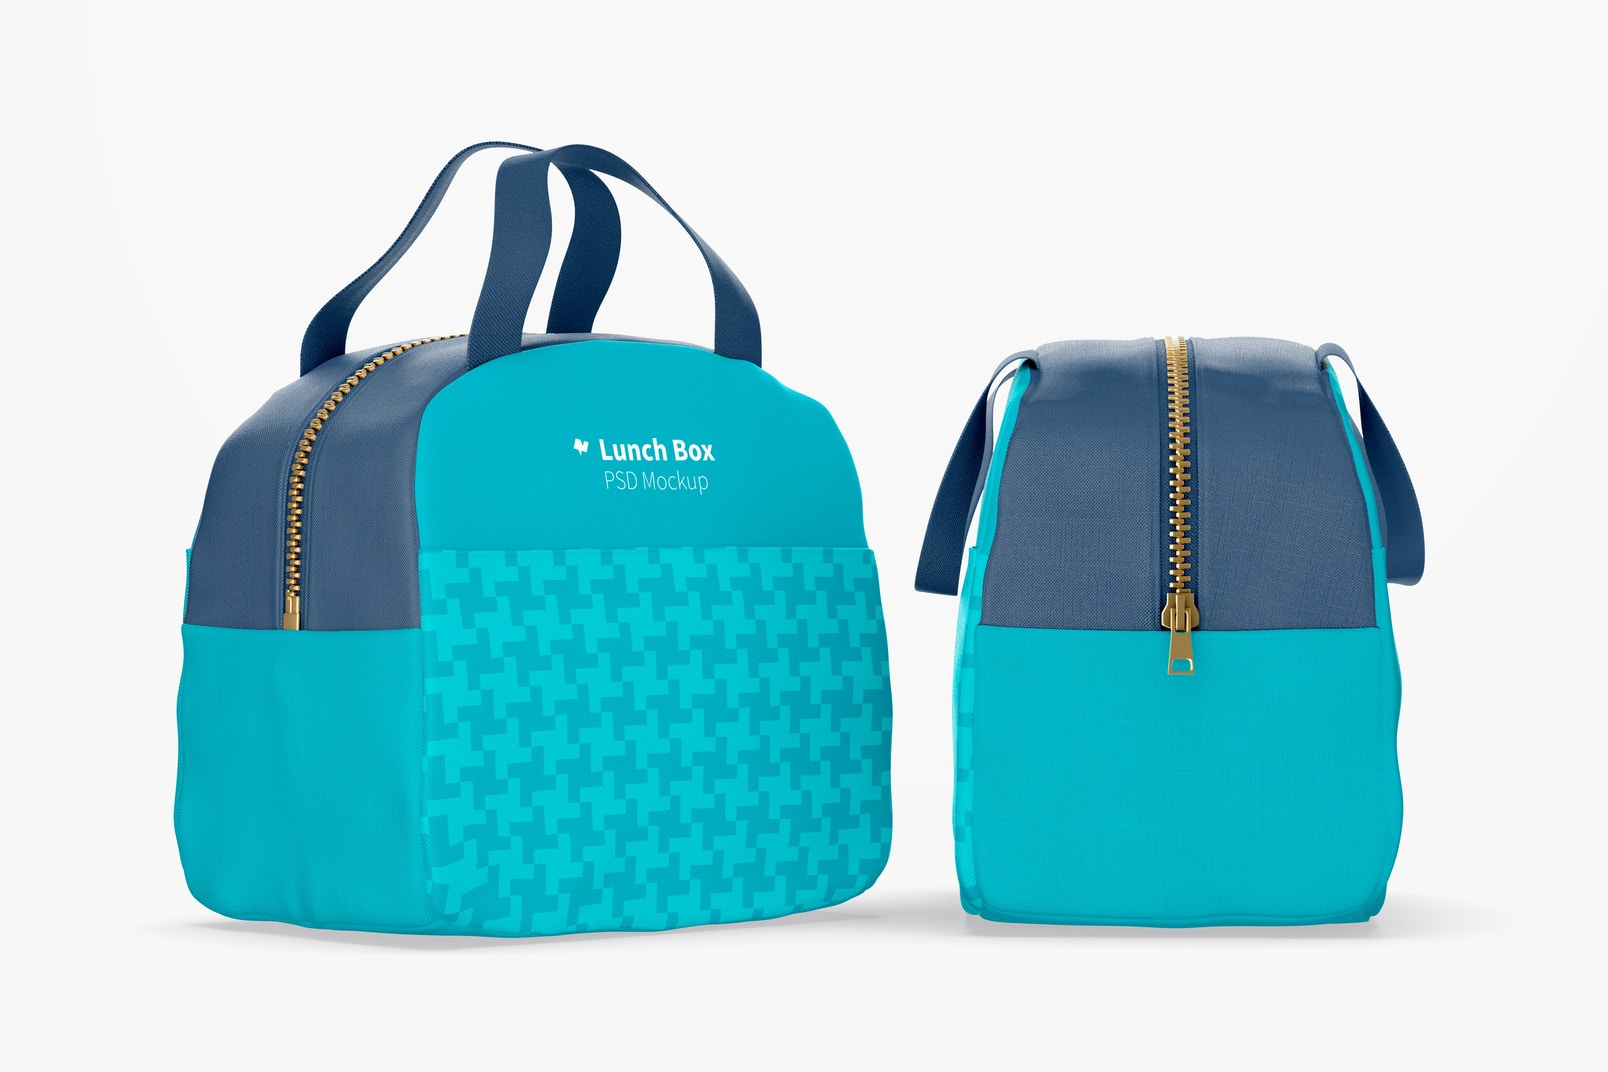 Lunch Bags with Front Pocket Mockup